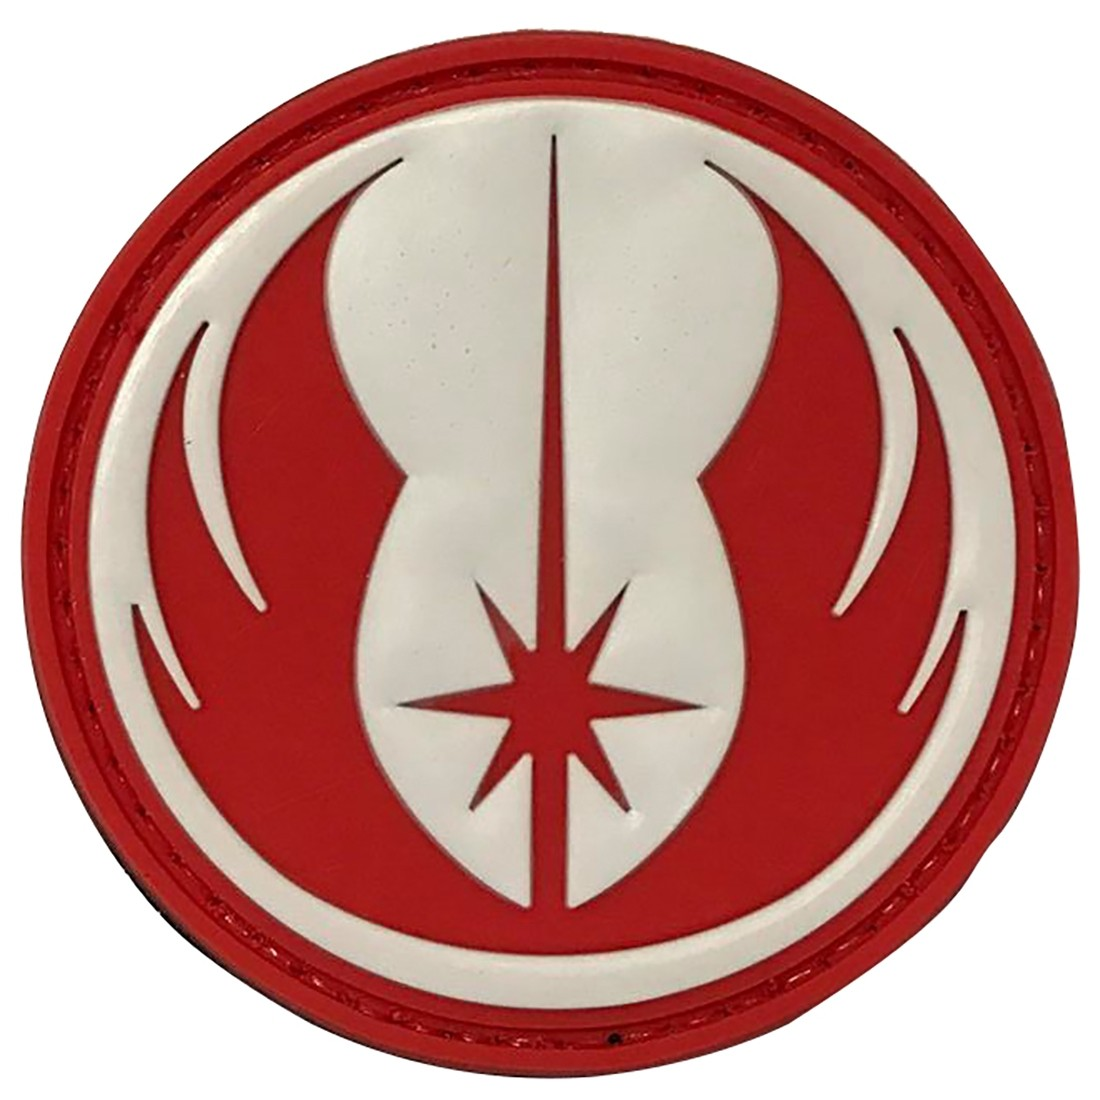 STAR WARS JEDI (Red & White) Tactical Rubber Velcro Patches